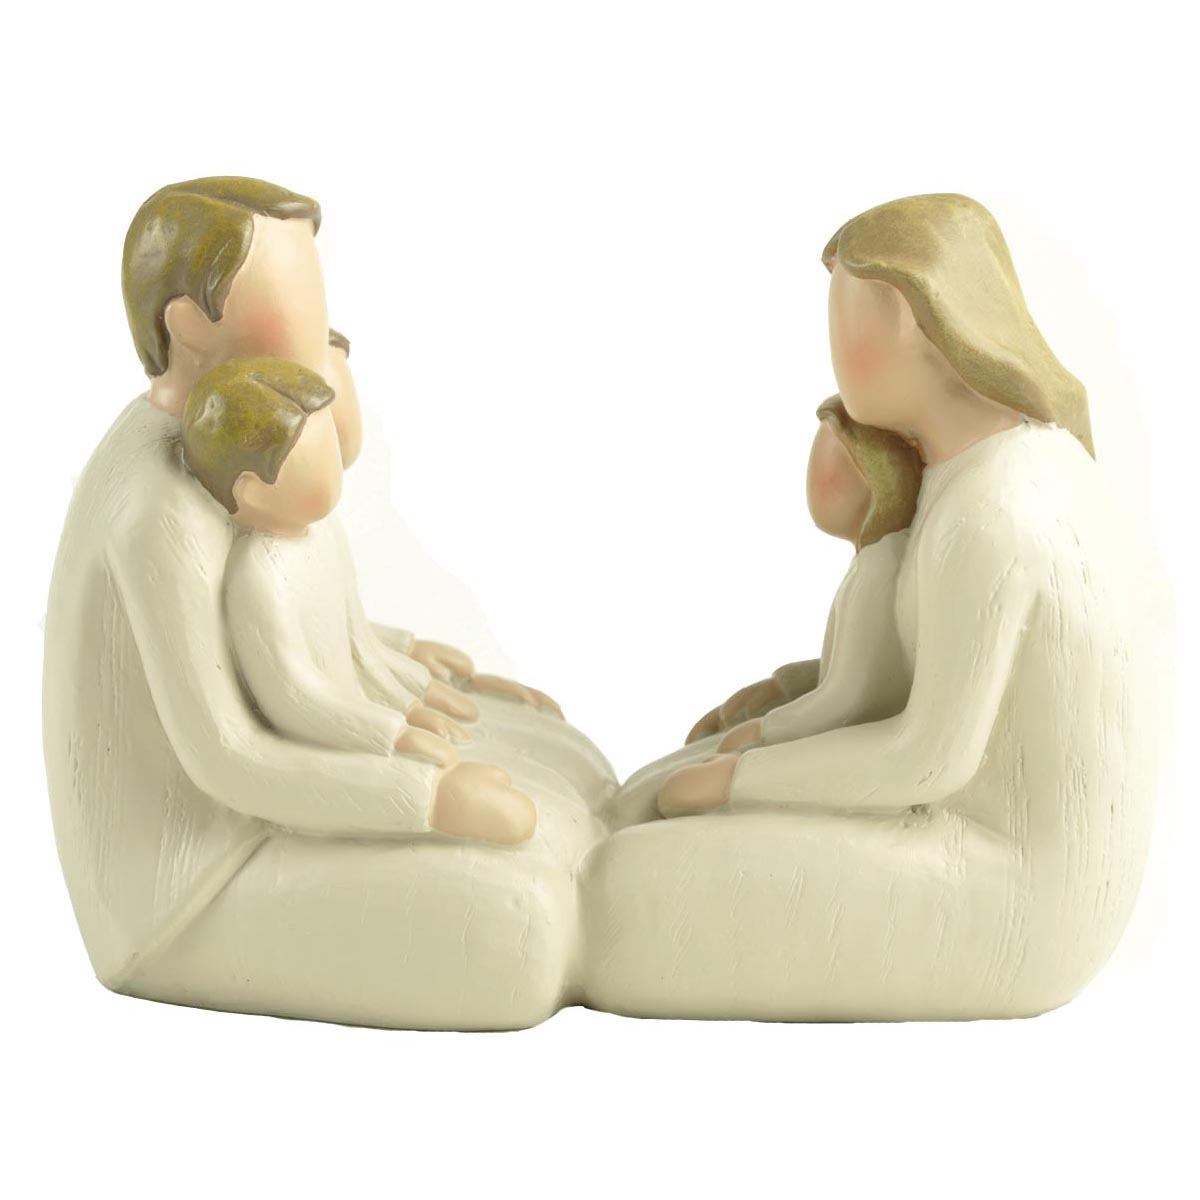 Ennas family statue funny wedding cake toppers high-quality at discount-1